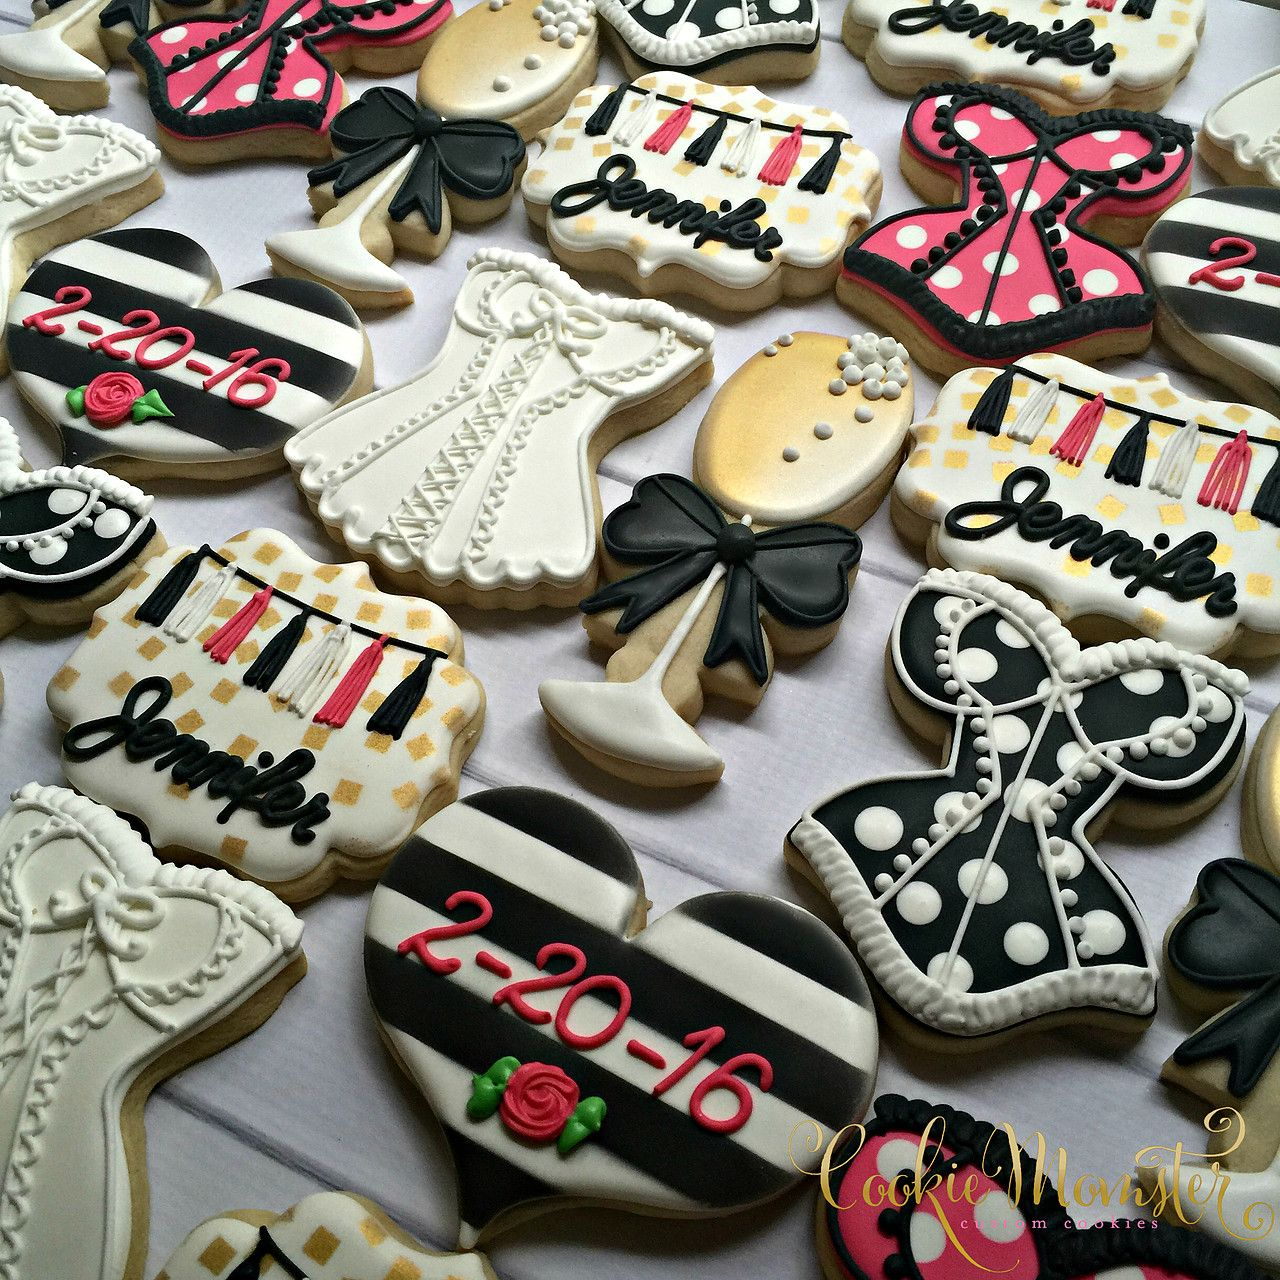 Cookie Momster by Hilary I Custom Cookies in Houston Stuff to Buy